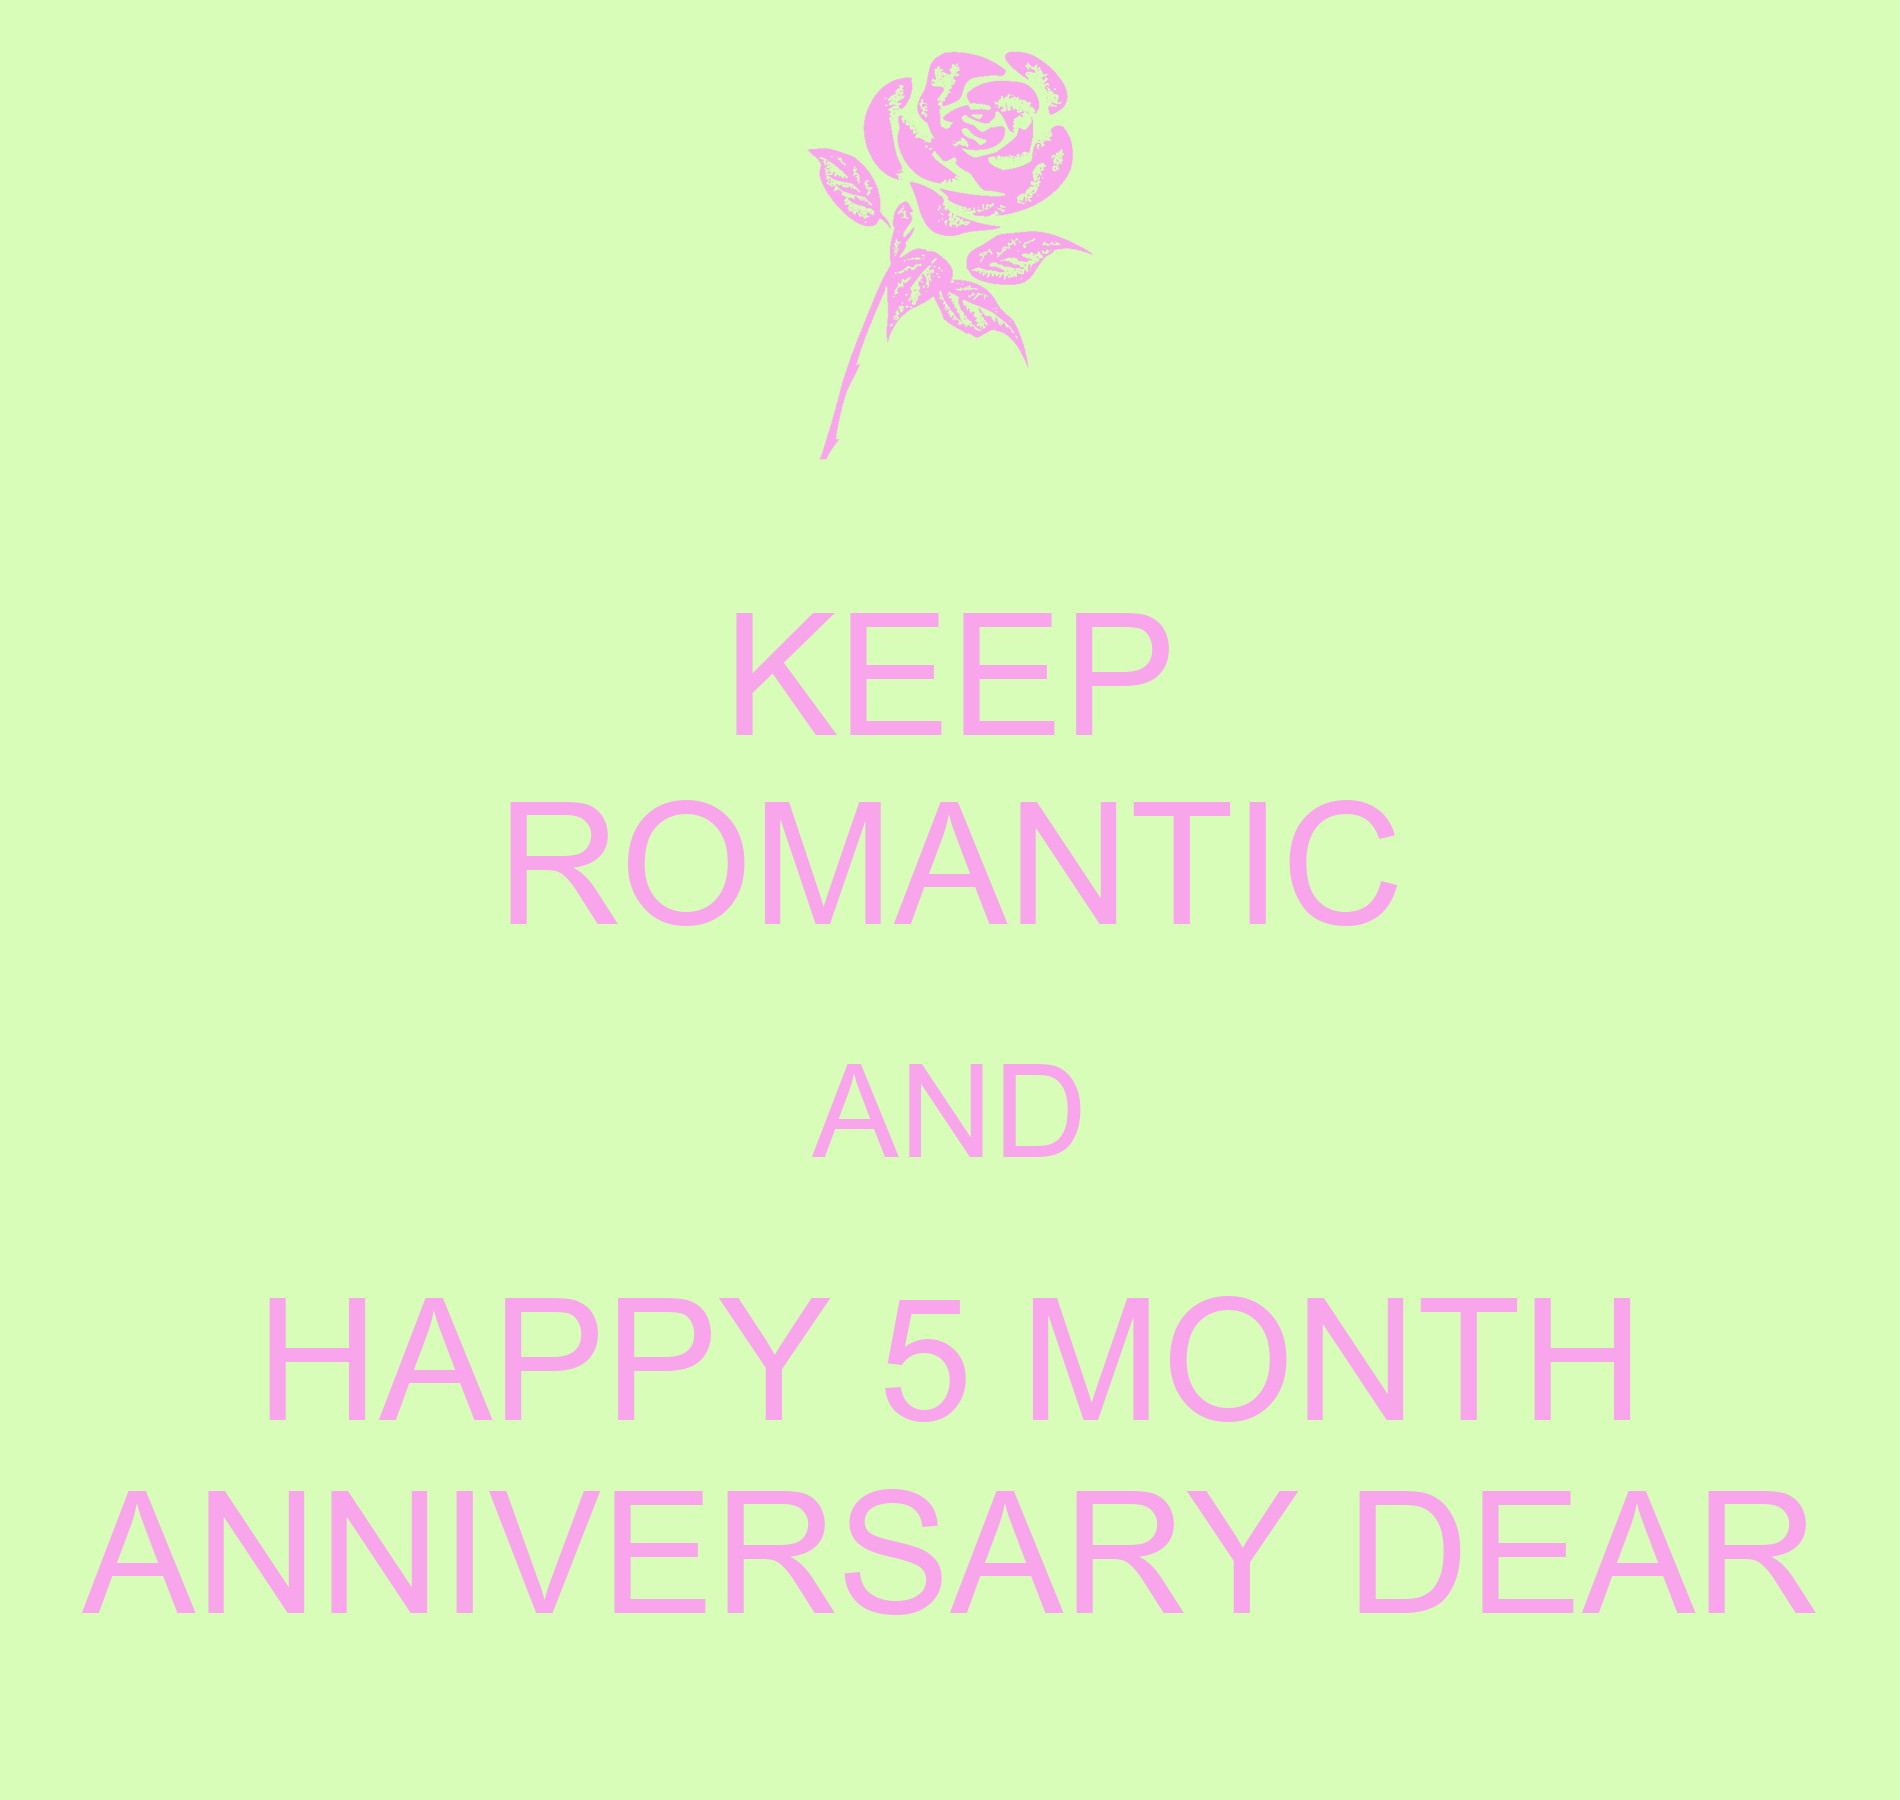 6 Month Anniversary Keep Romantic And Happy Month Anniversary Dear